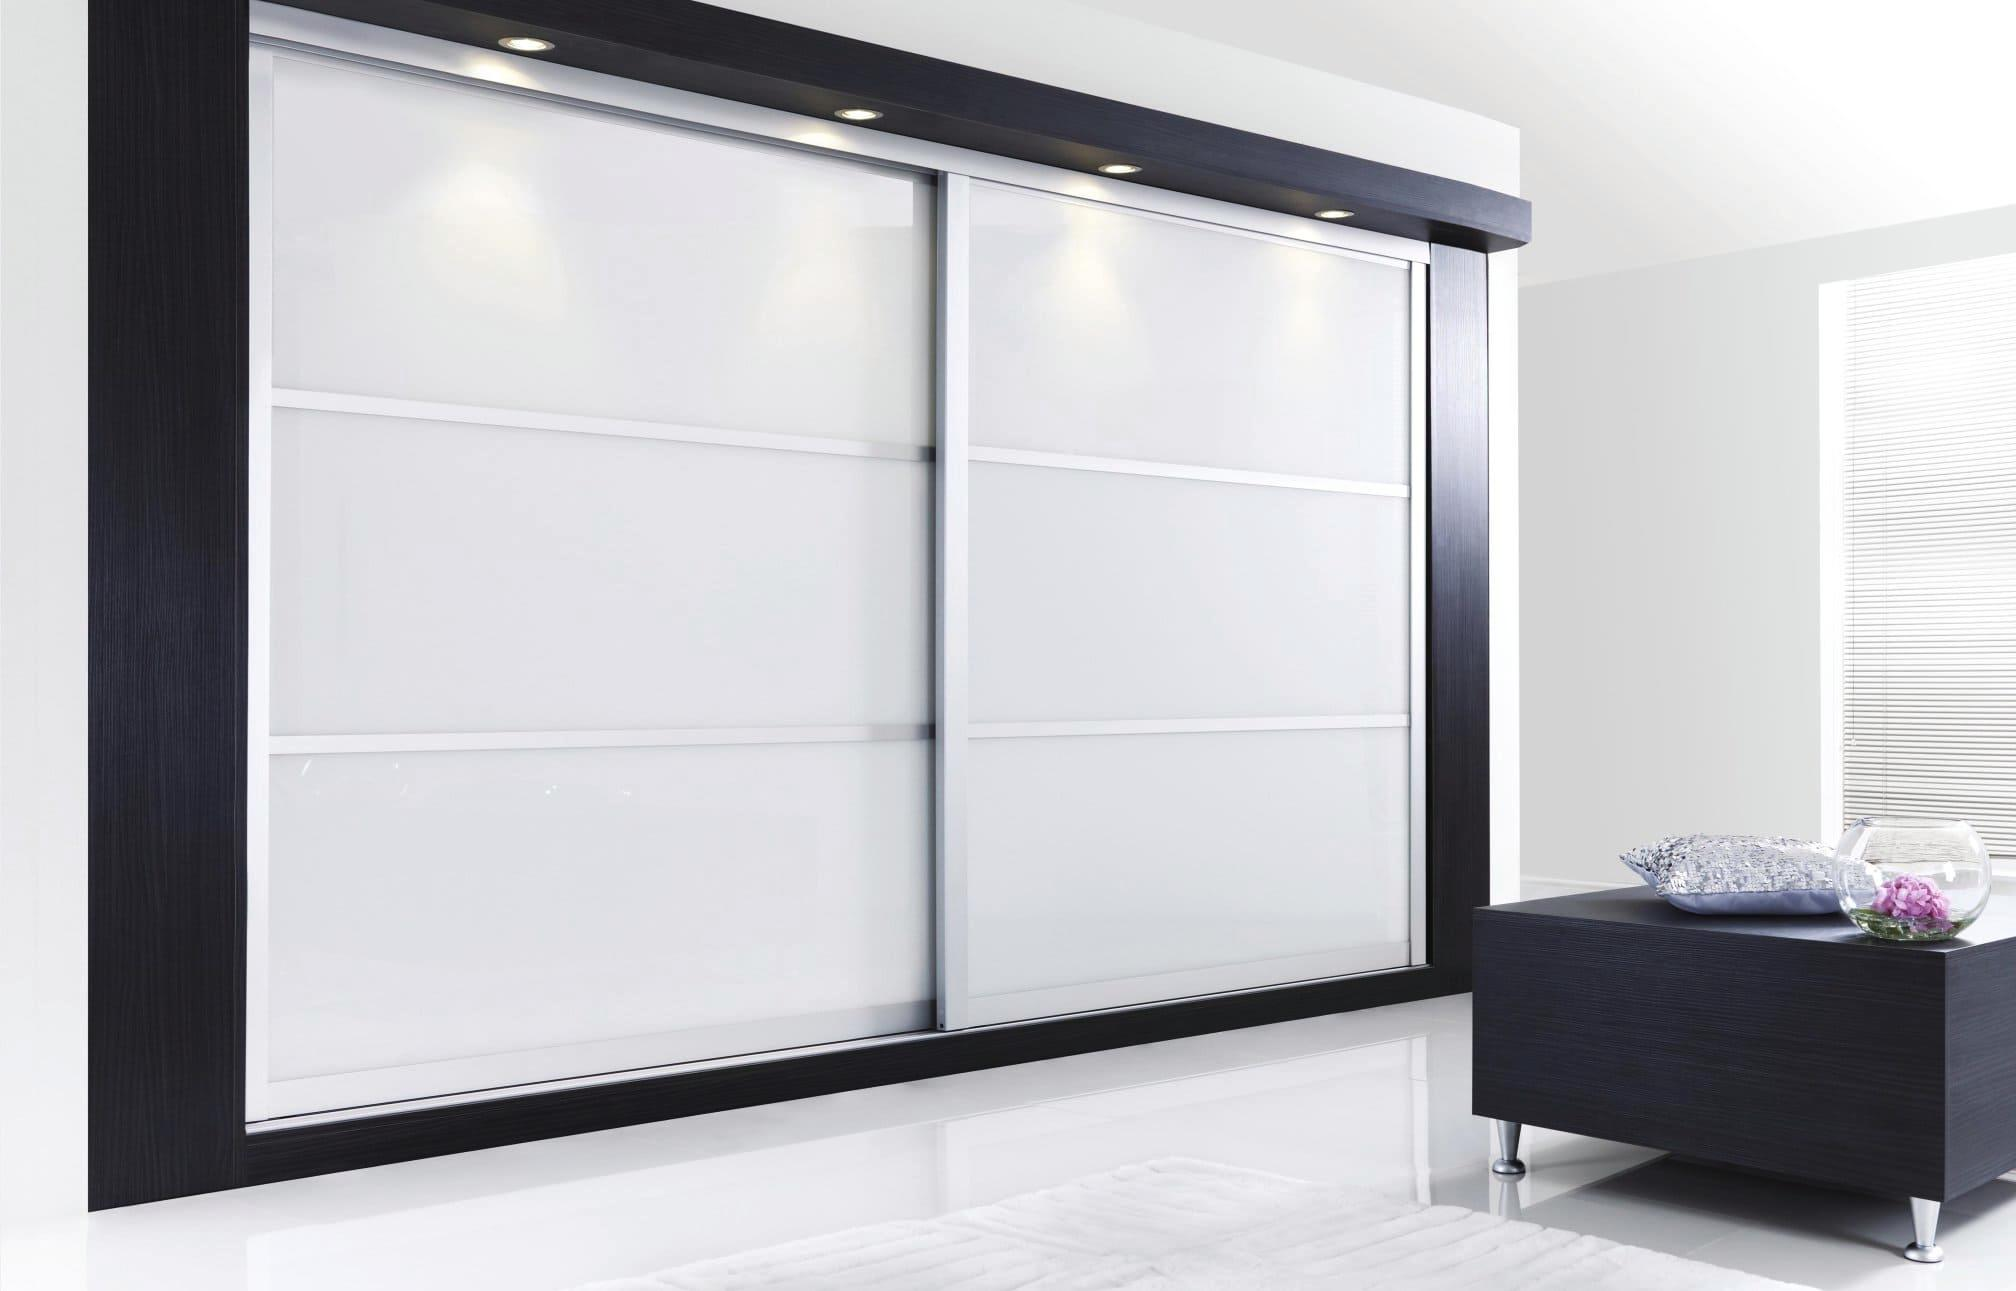 replacement wardrobe doors furniture for home and office. Black Bedroom Furniture Sets. Home Design Ideas